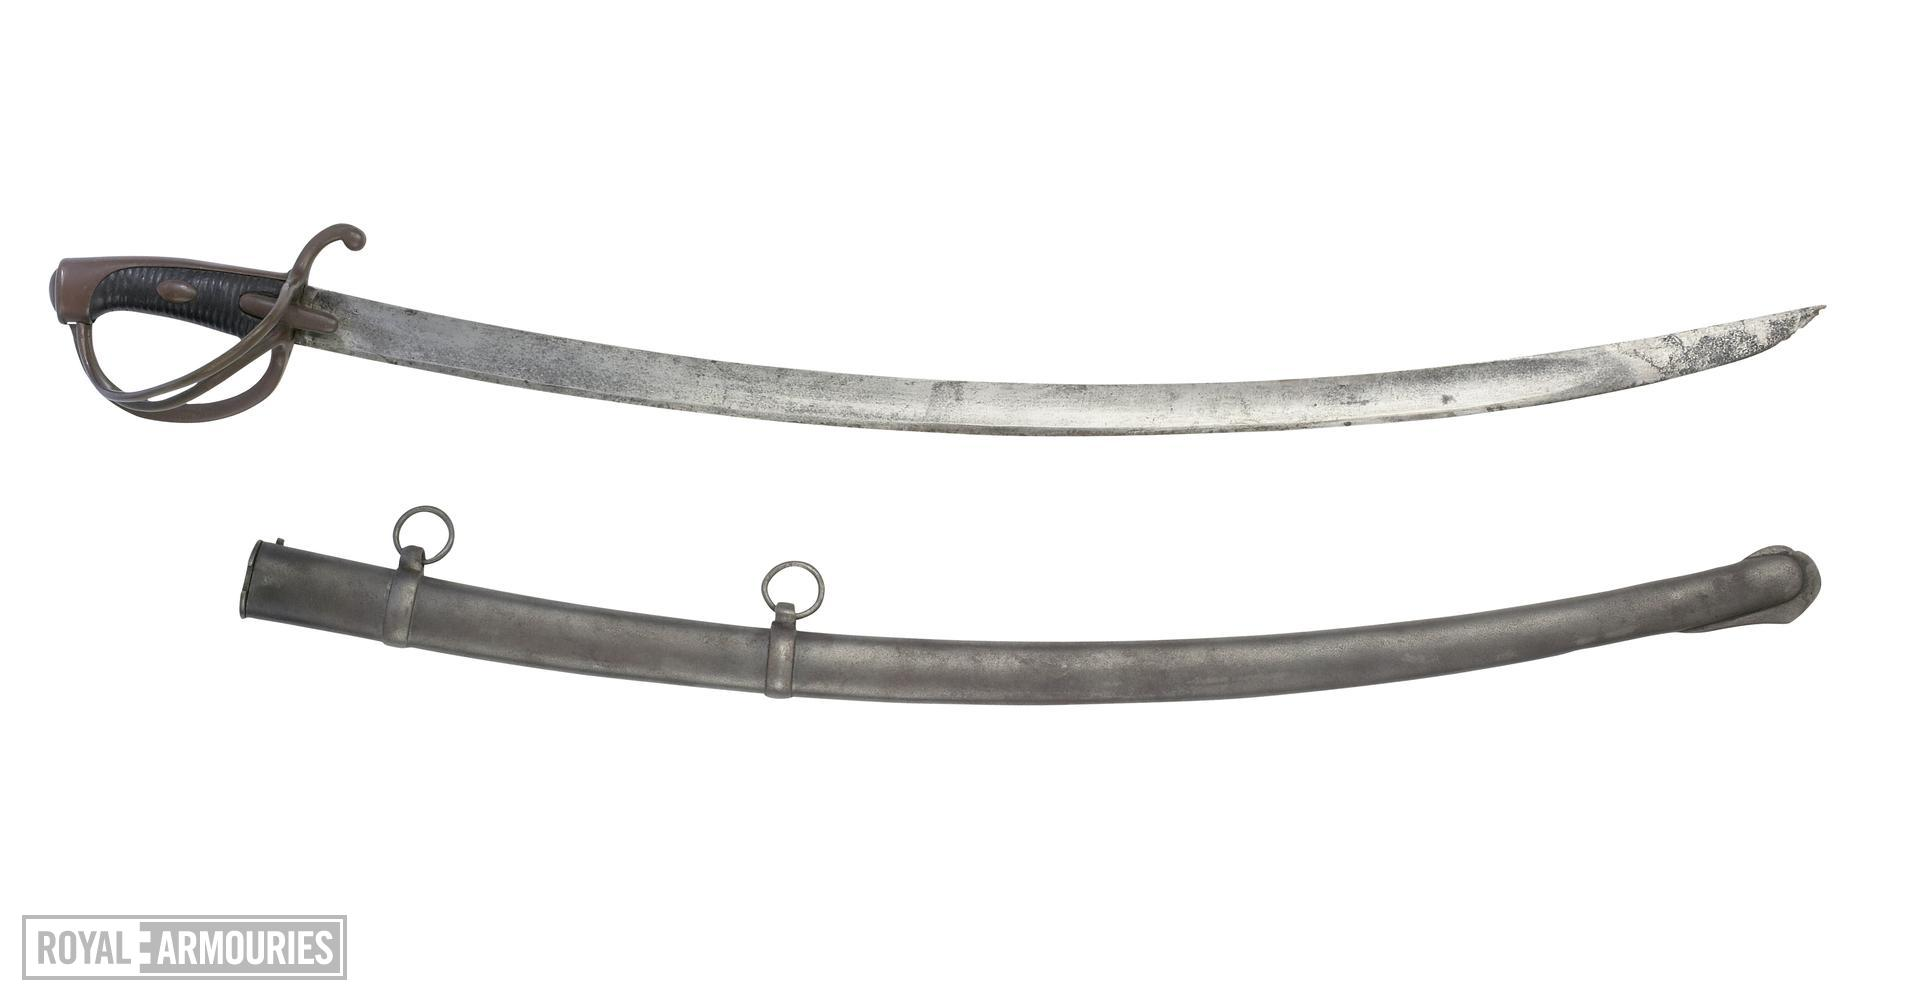 Sabre and scabbard Cavalry sabre and scabbard, Pattern 1826